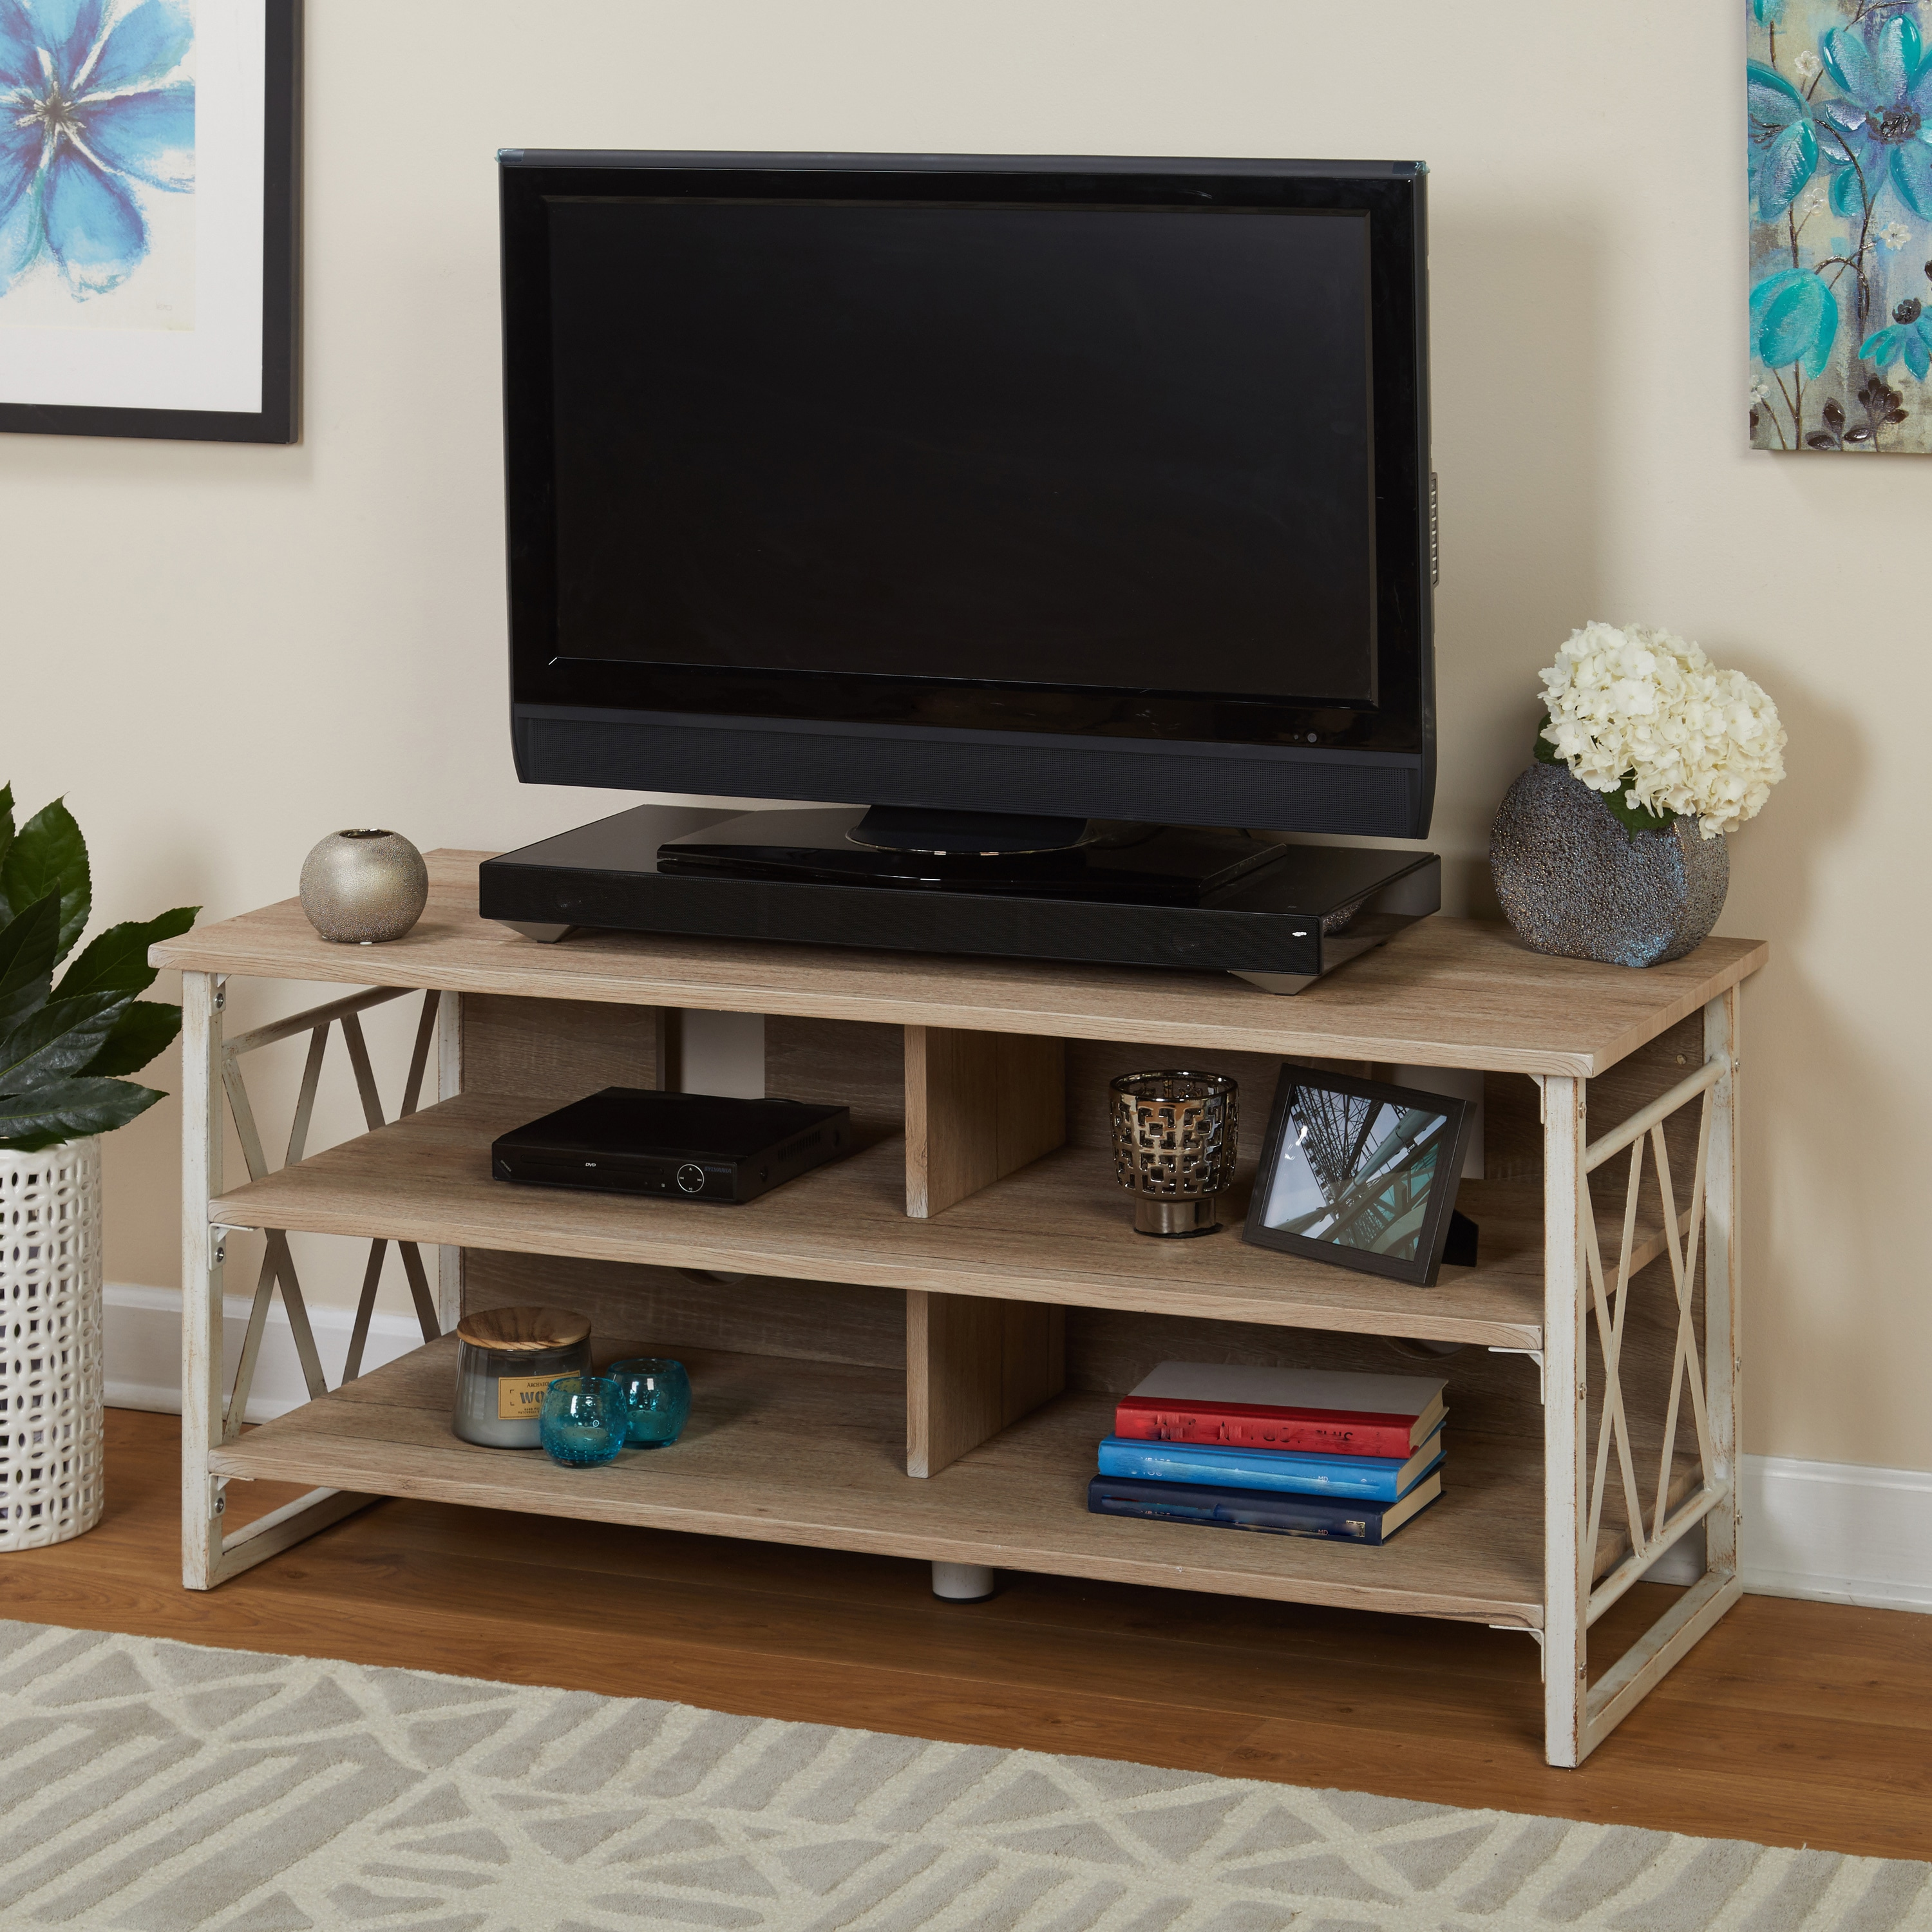 Shop Simple Living Seneca Xx 48 Inch Tv Stand Free Shipping Today